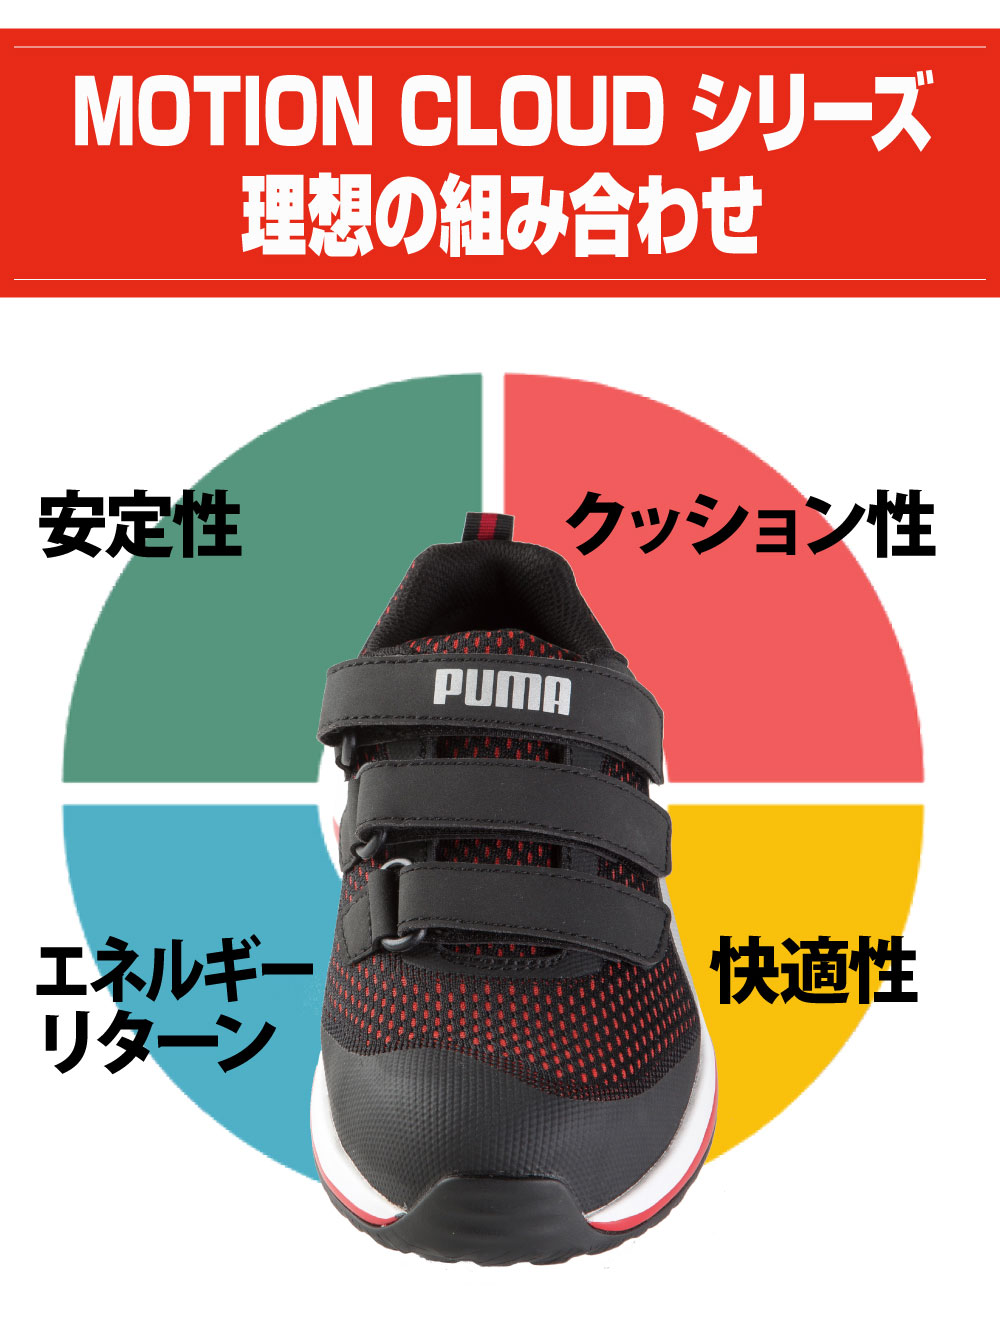 PUMA SAFETY MOTION CLOUD